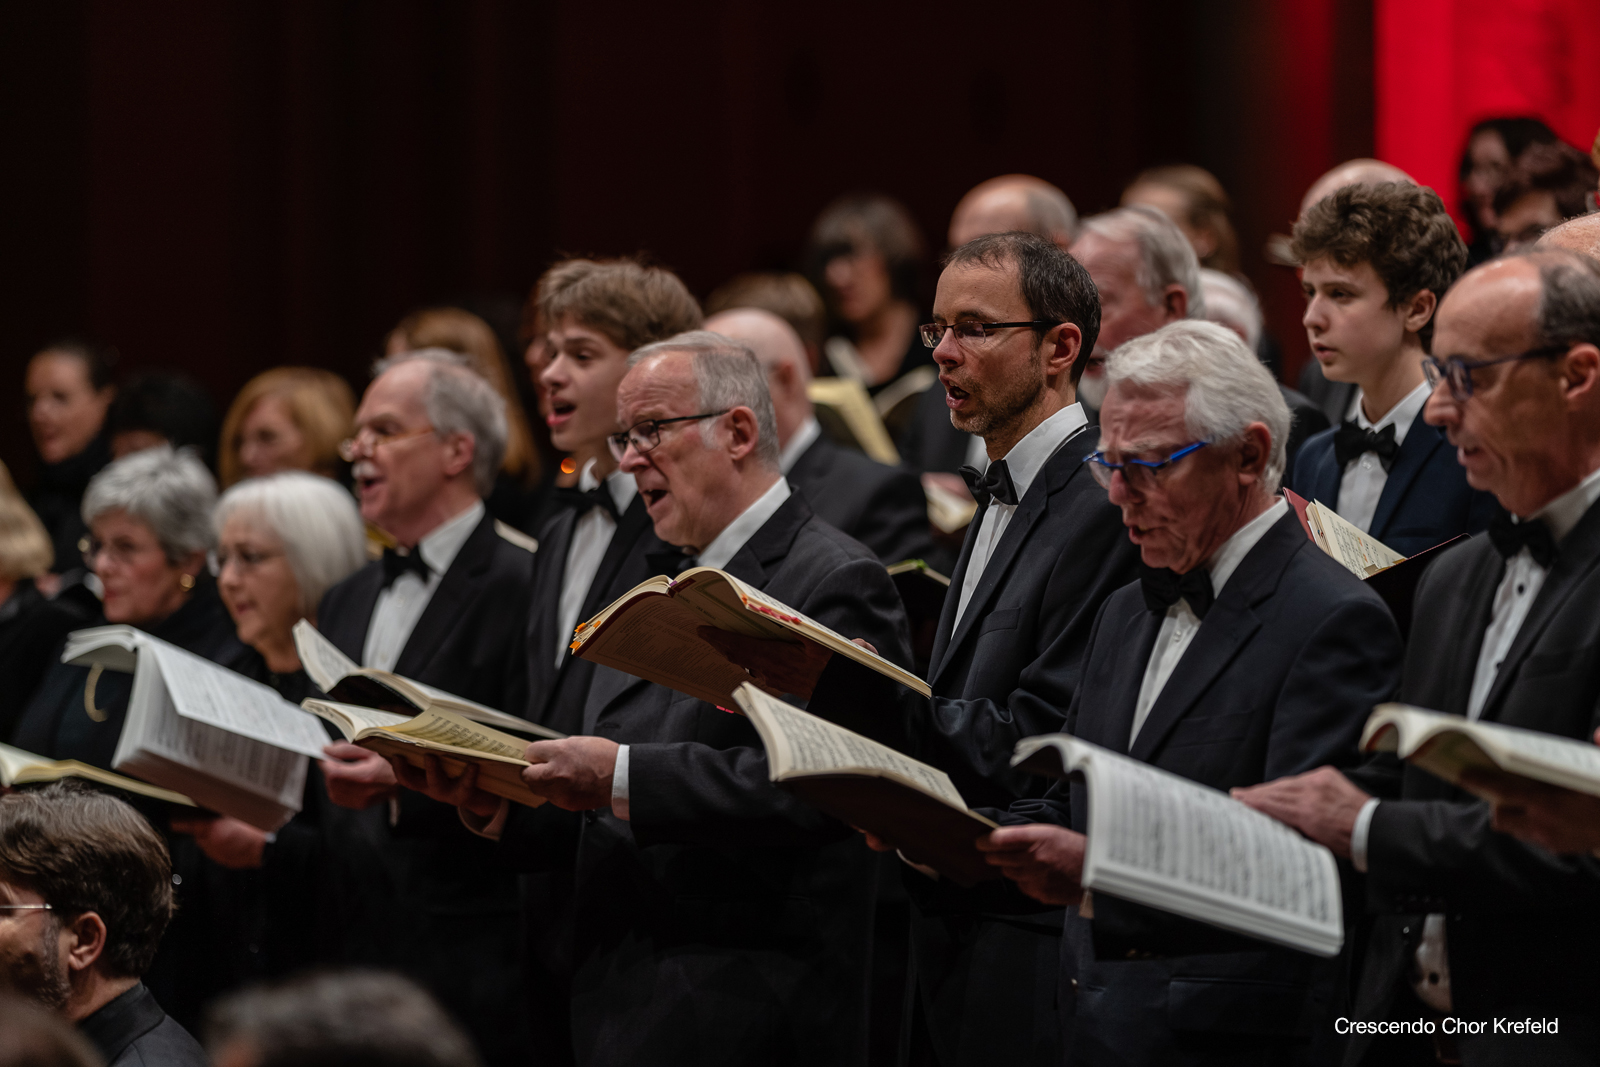 04_20191222_Crescendo_Chor_Krefeld_Messiah_070